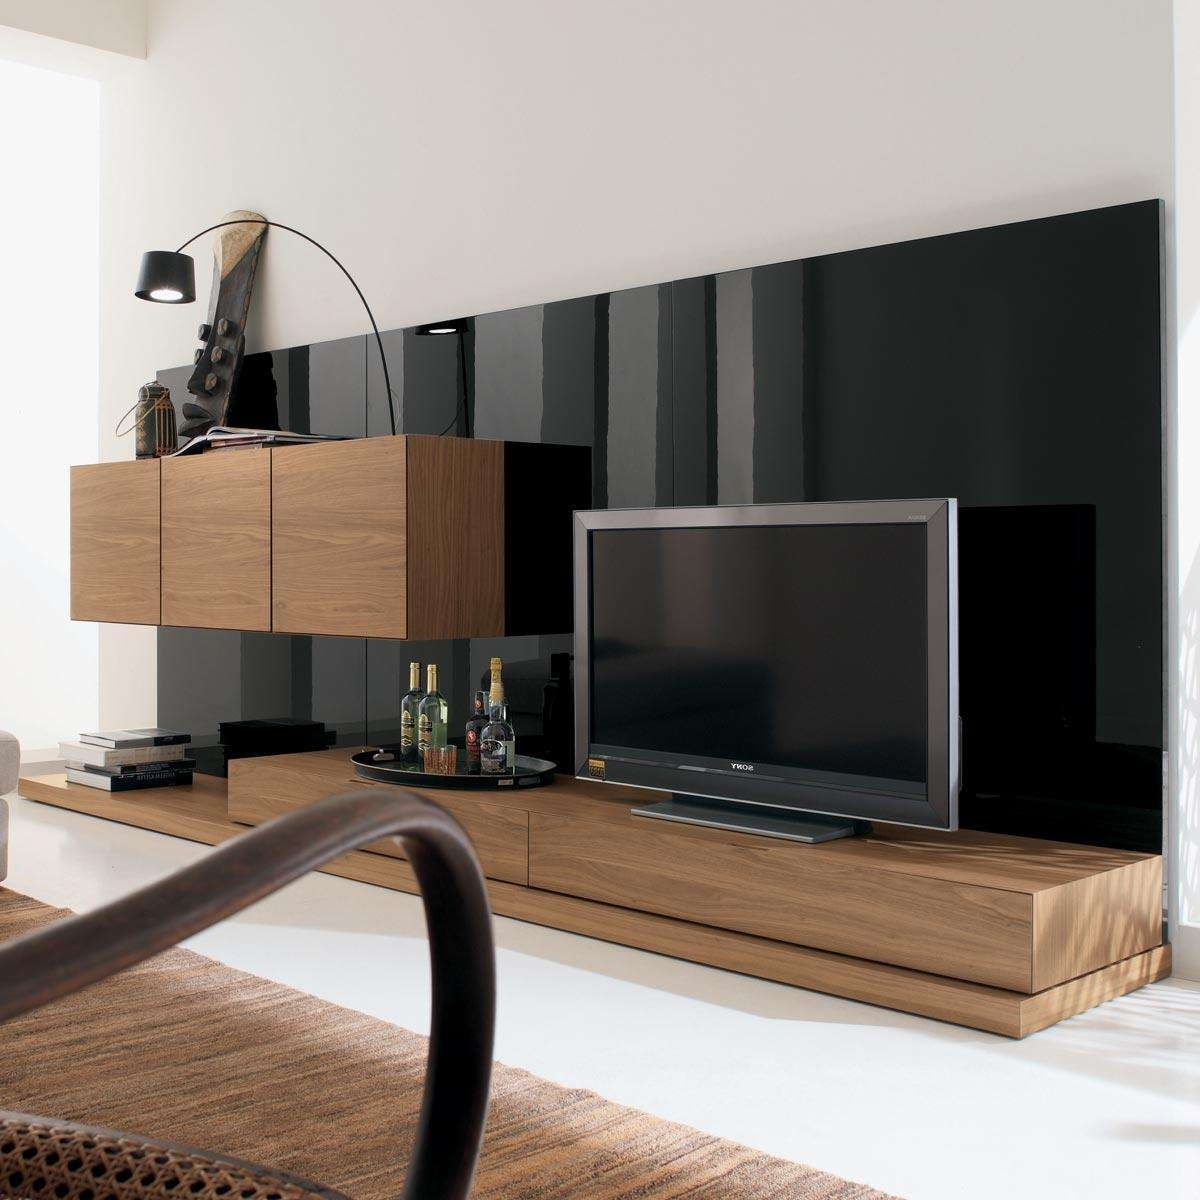 Triangle Tv Stand Tall Corner Solid Wood Wall Unit With High Gloss Regarding Contemporary Tv Stands For Flat Screens (View 10 of 15)